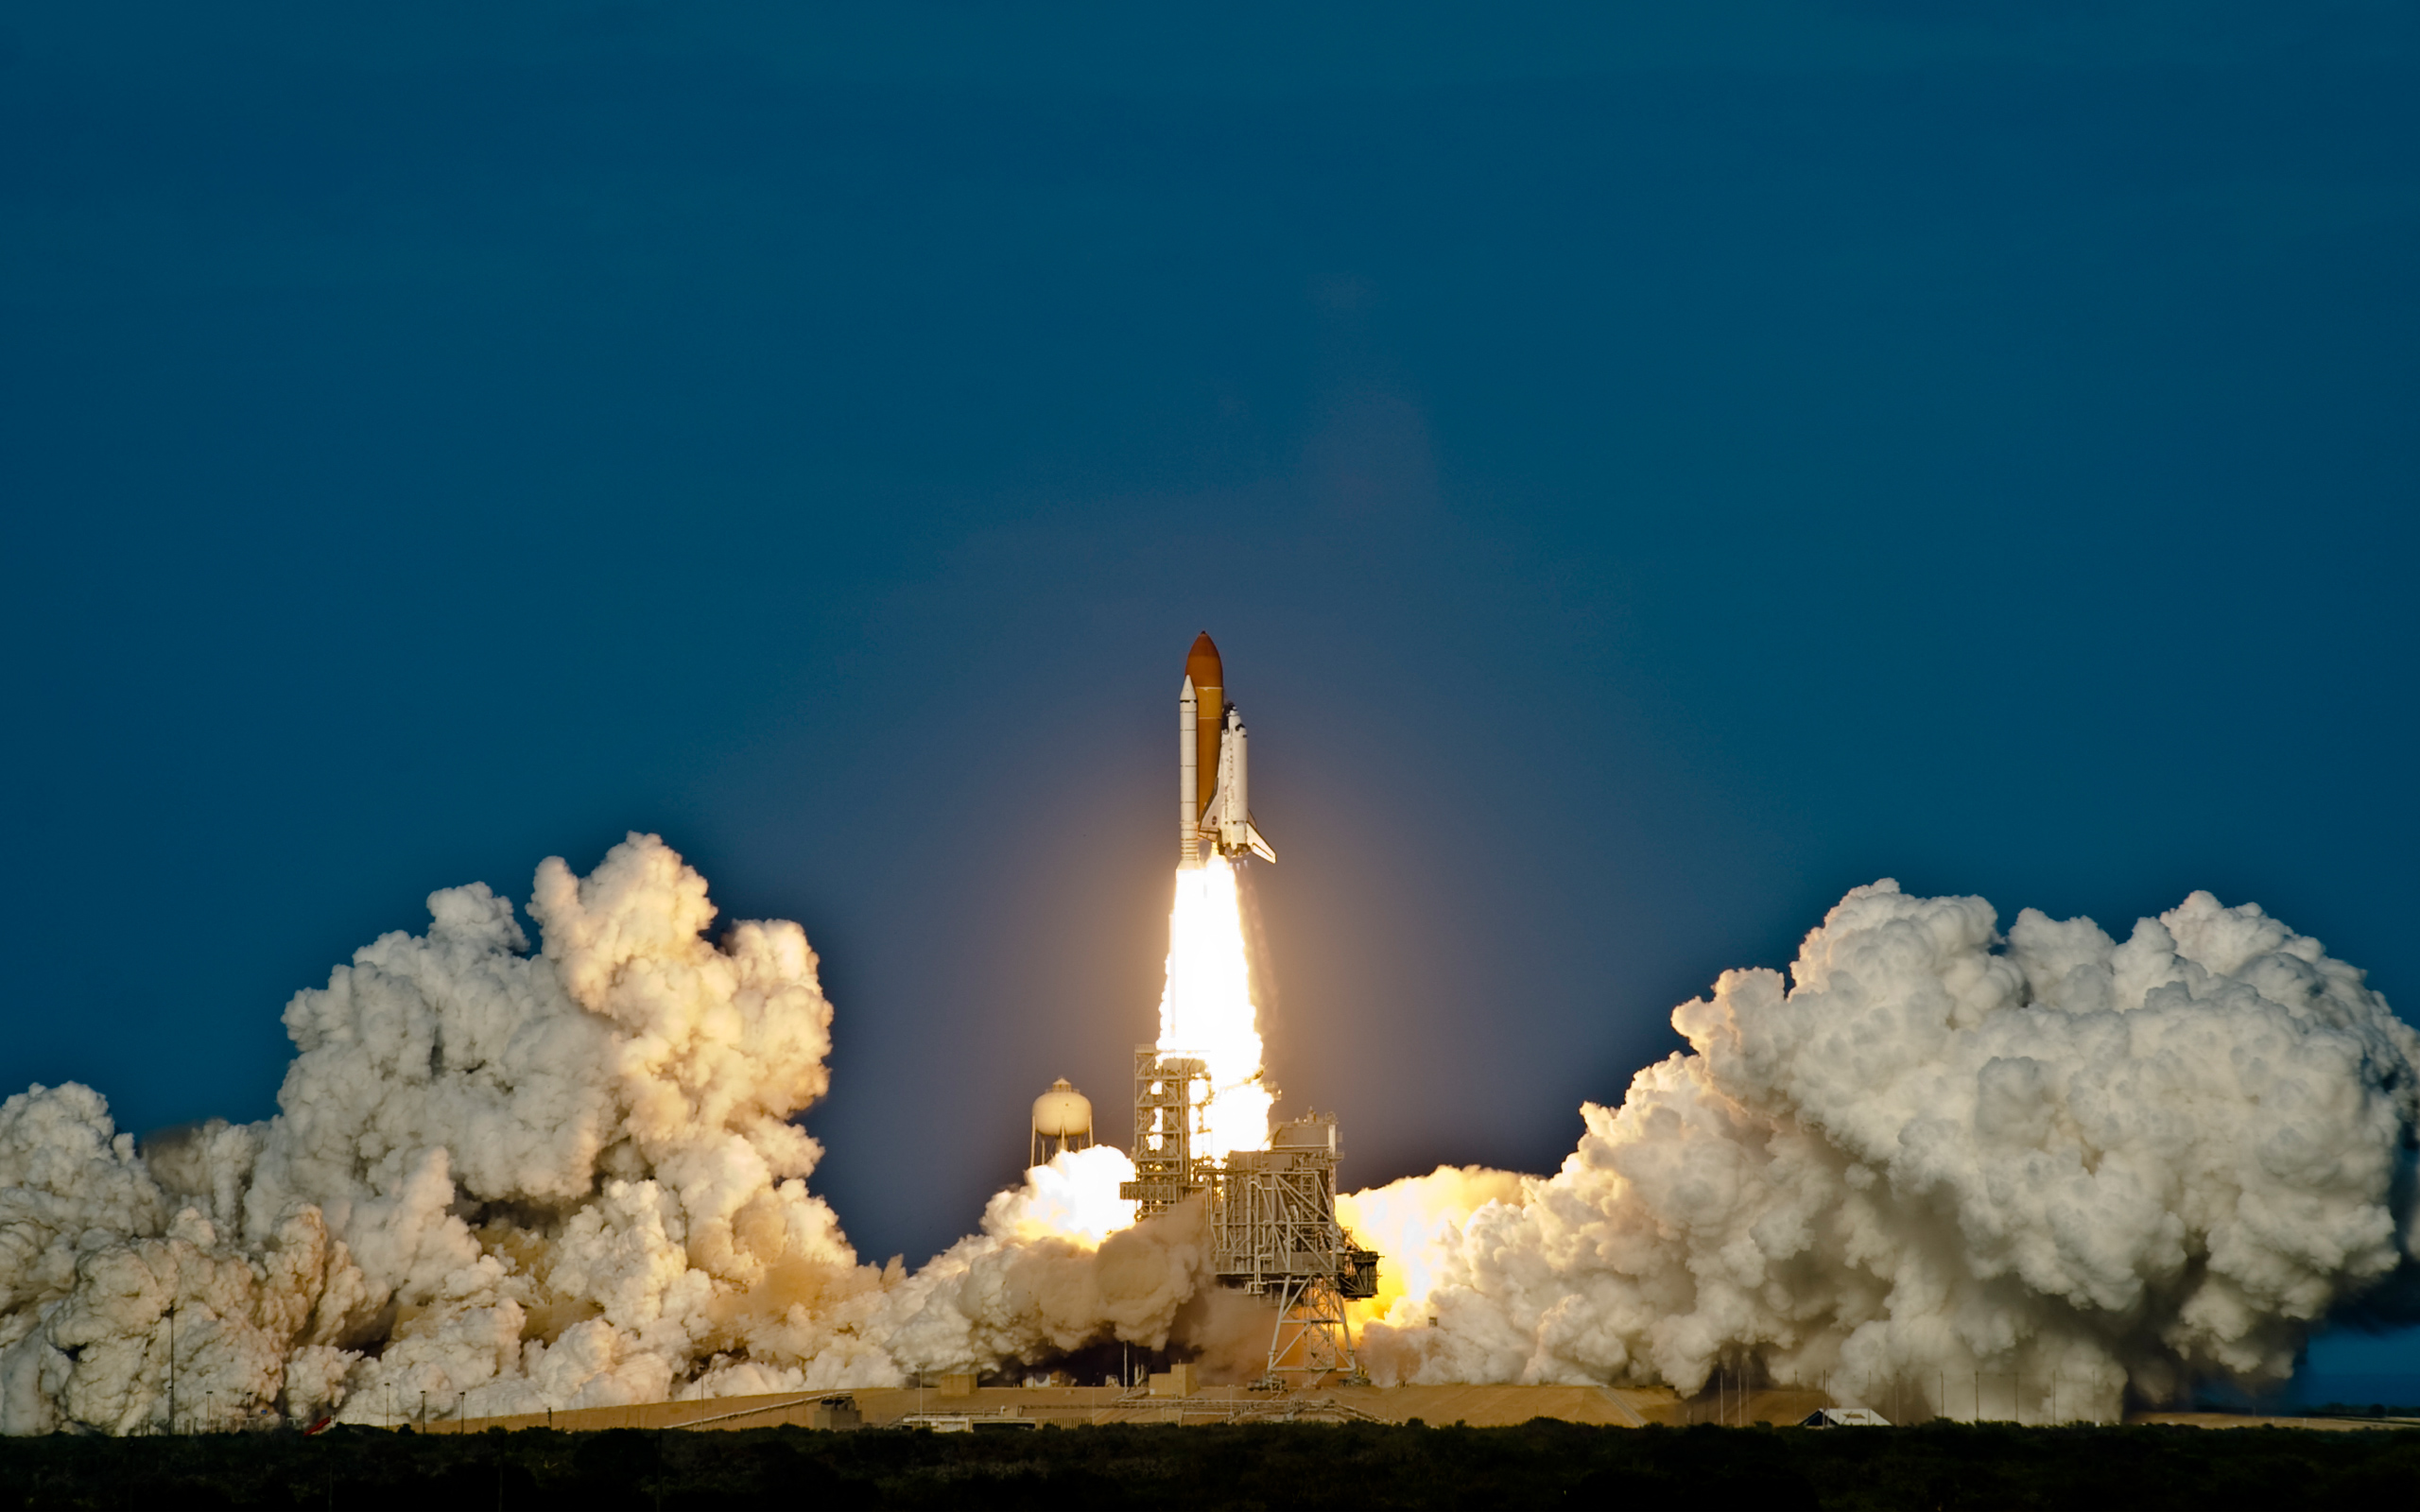 Space shuttle launch hd